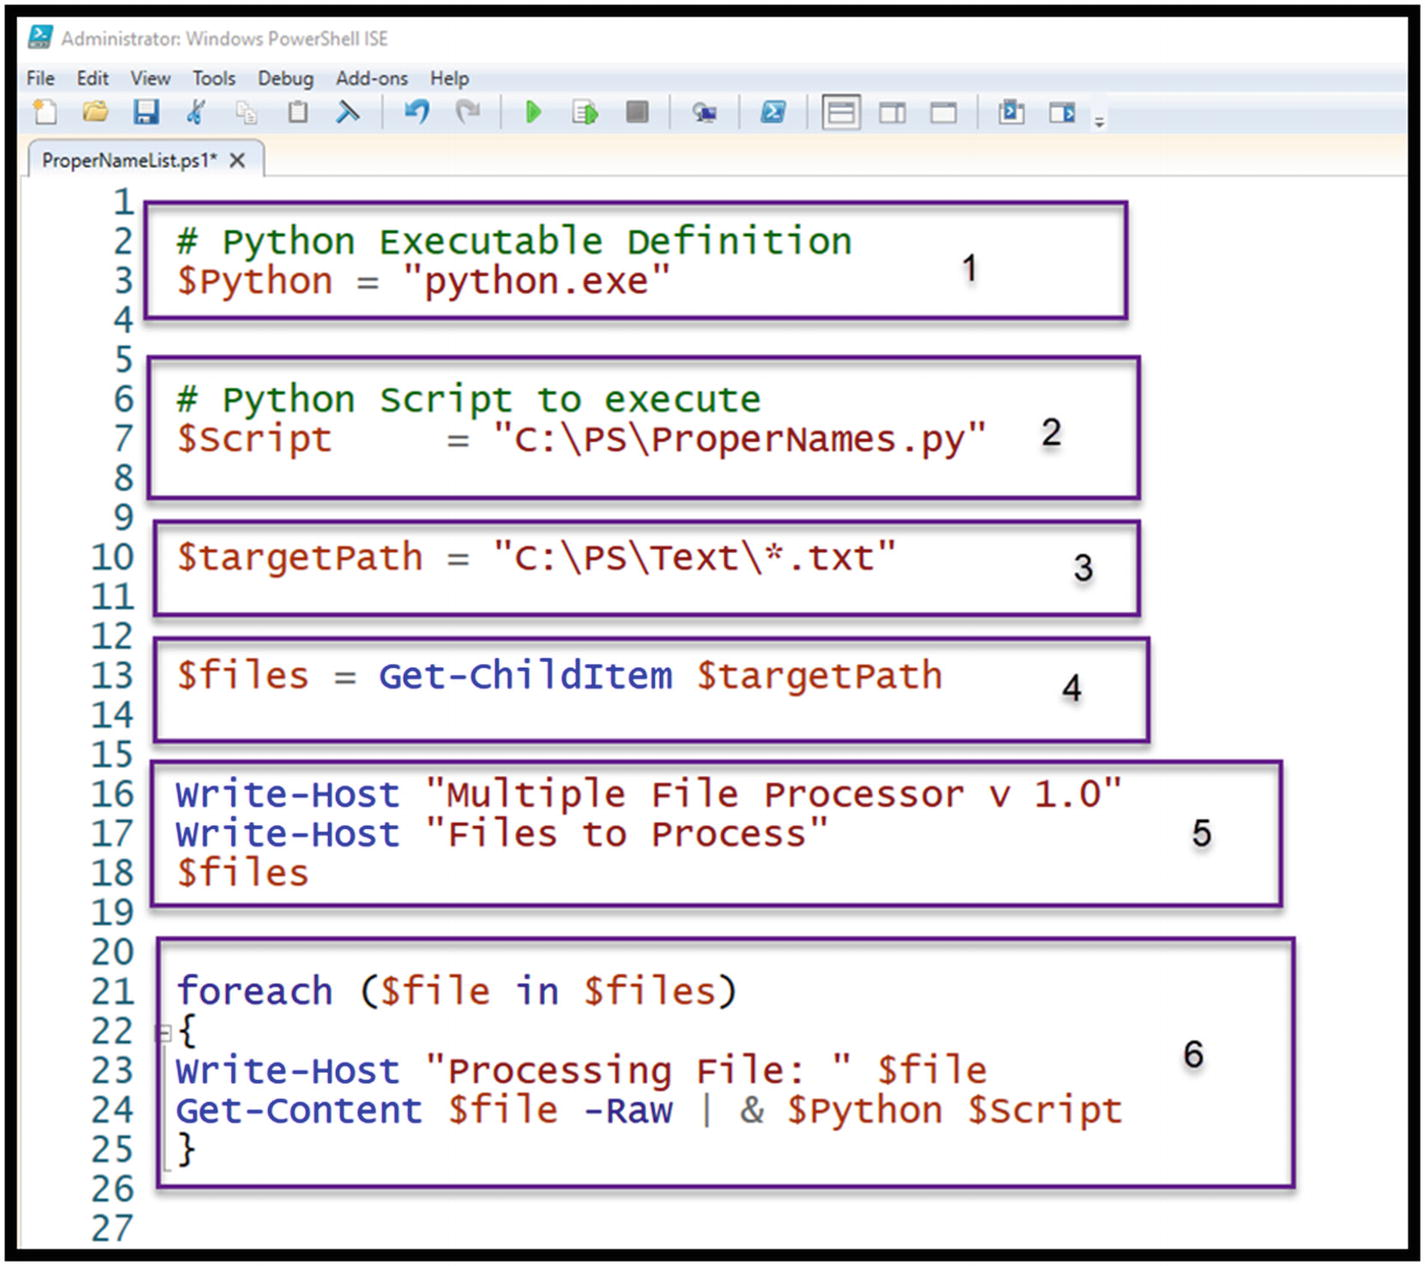 Launching Python from PowerShell | SpringerLink